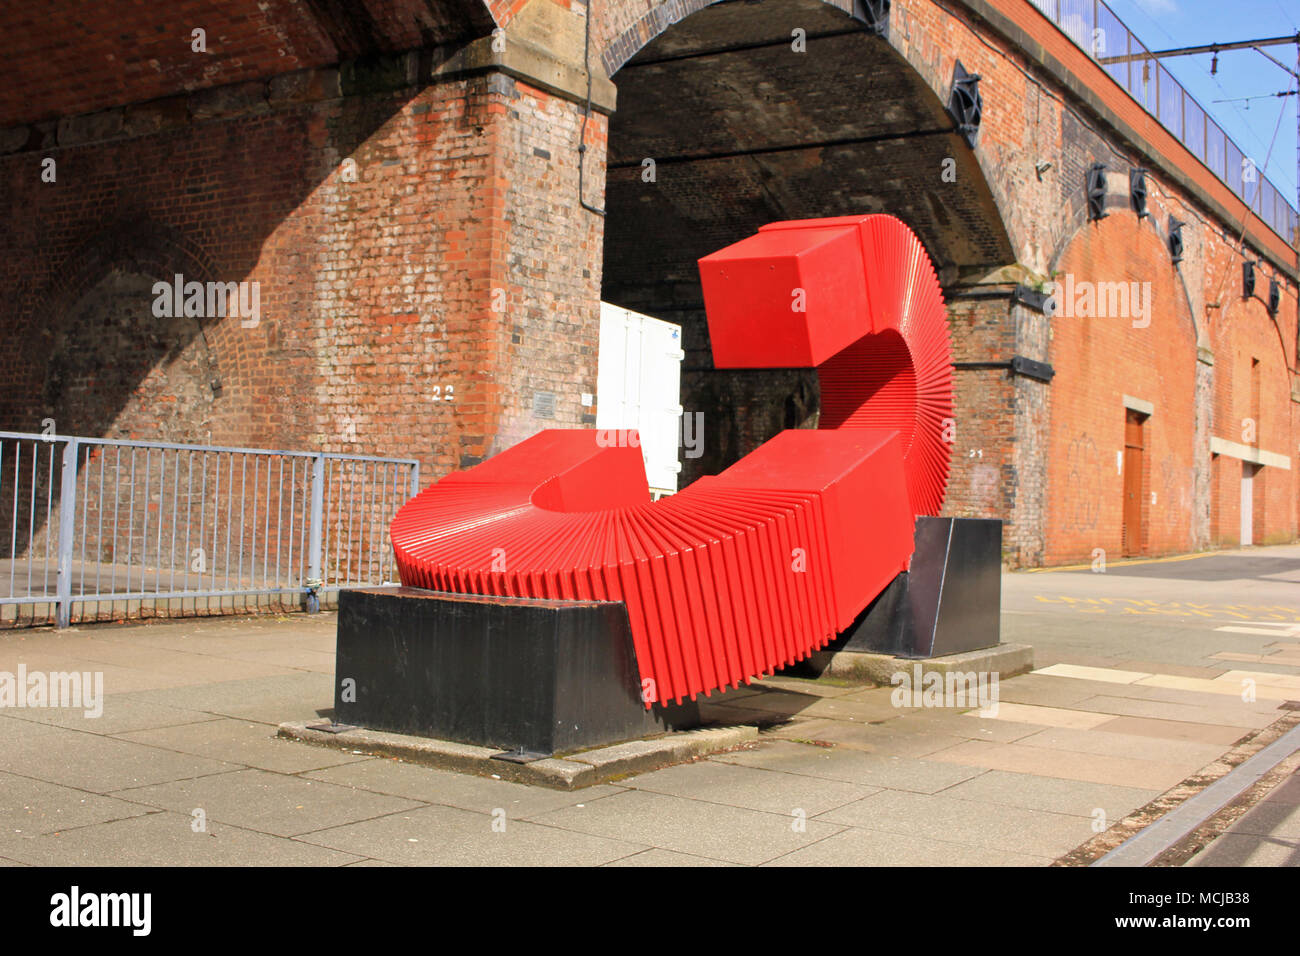 A Sculpture, The Generation of Possibilities, by Paul Frank Lewthwaite to mark the 175th anniversary of Umist in 1999. Image no 2 in a series of 5 - Stock Image